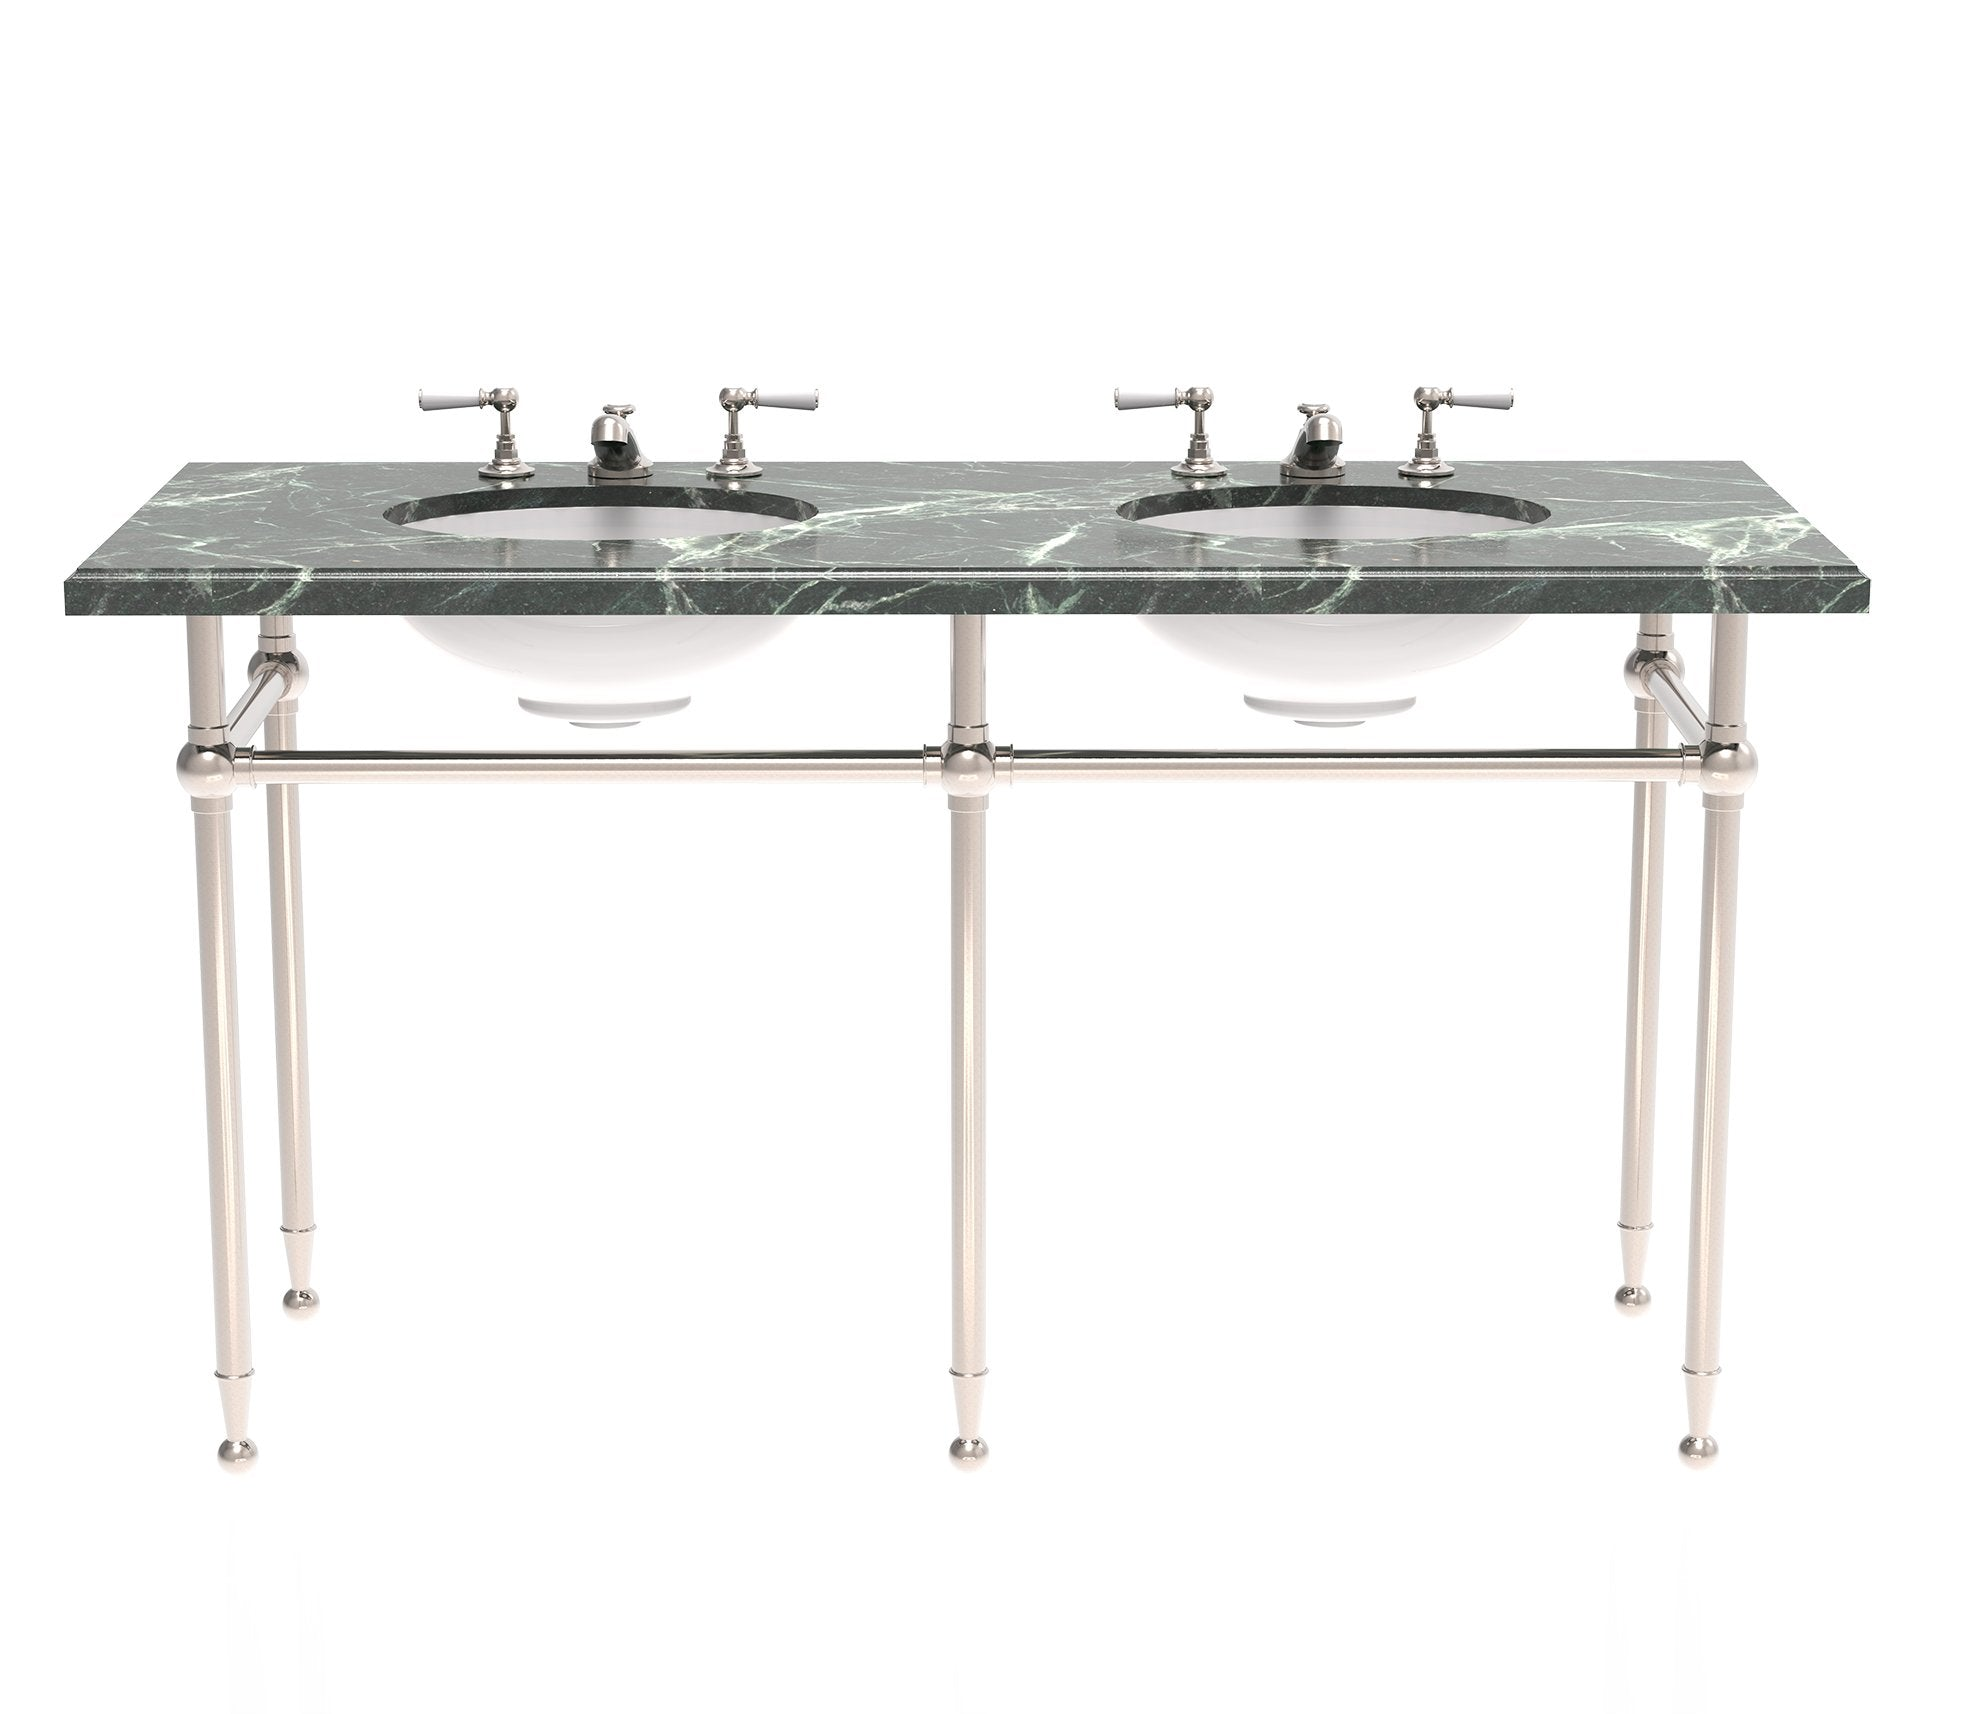 Hanbury Washstand Double 5-Leg Product Image 3